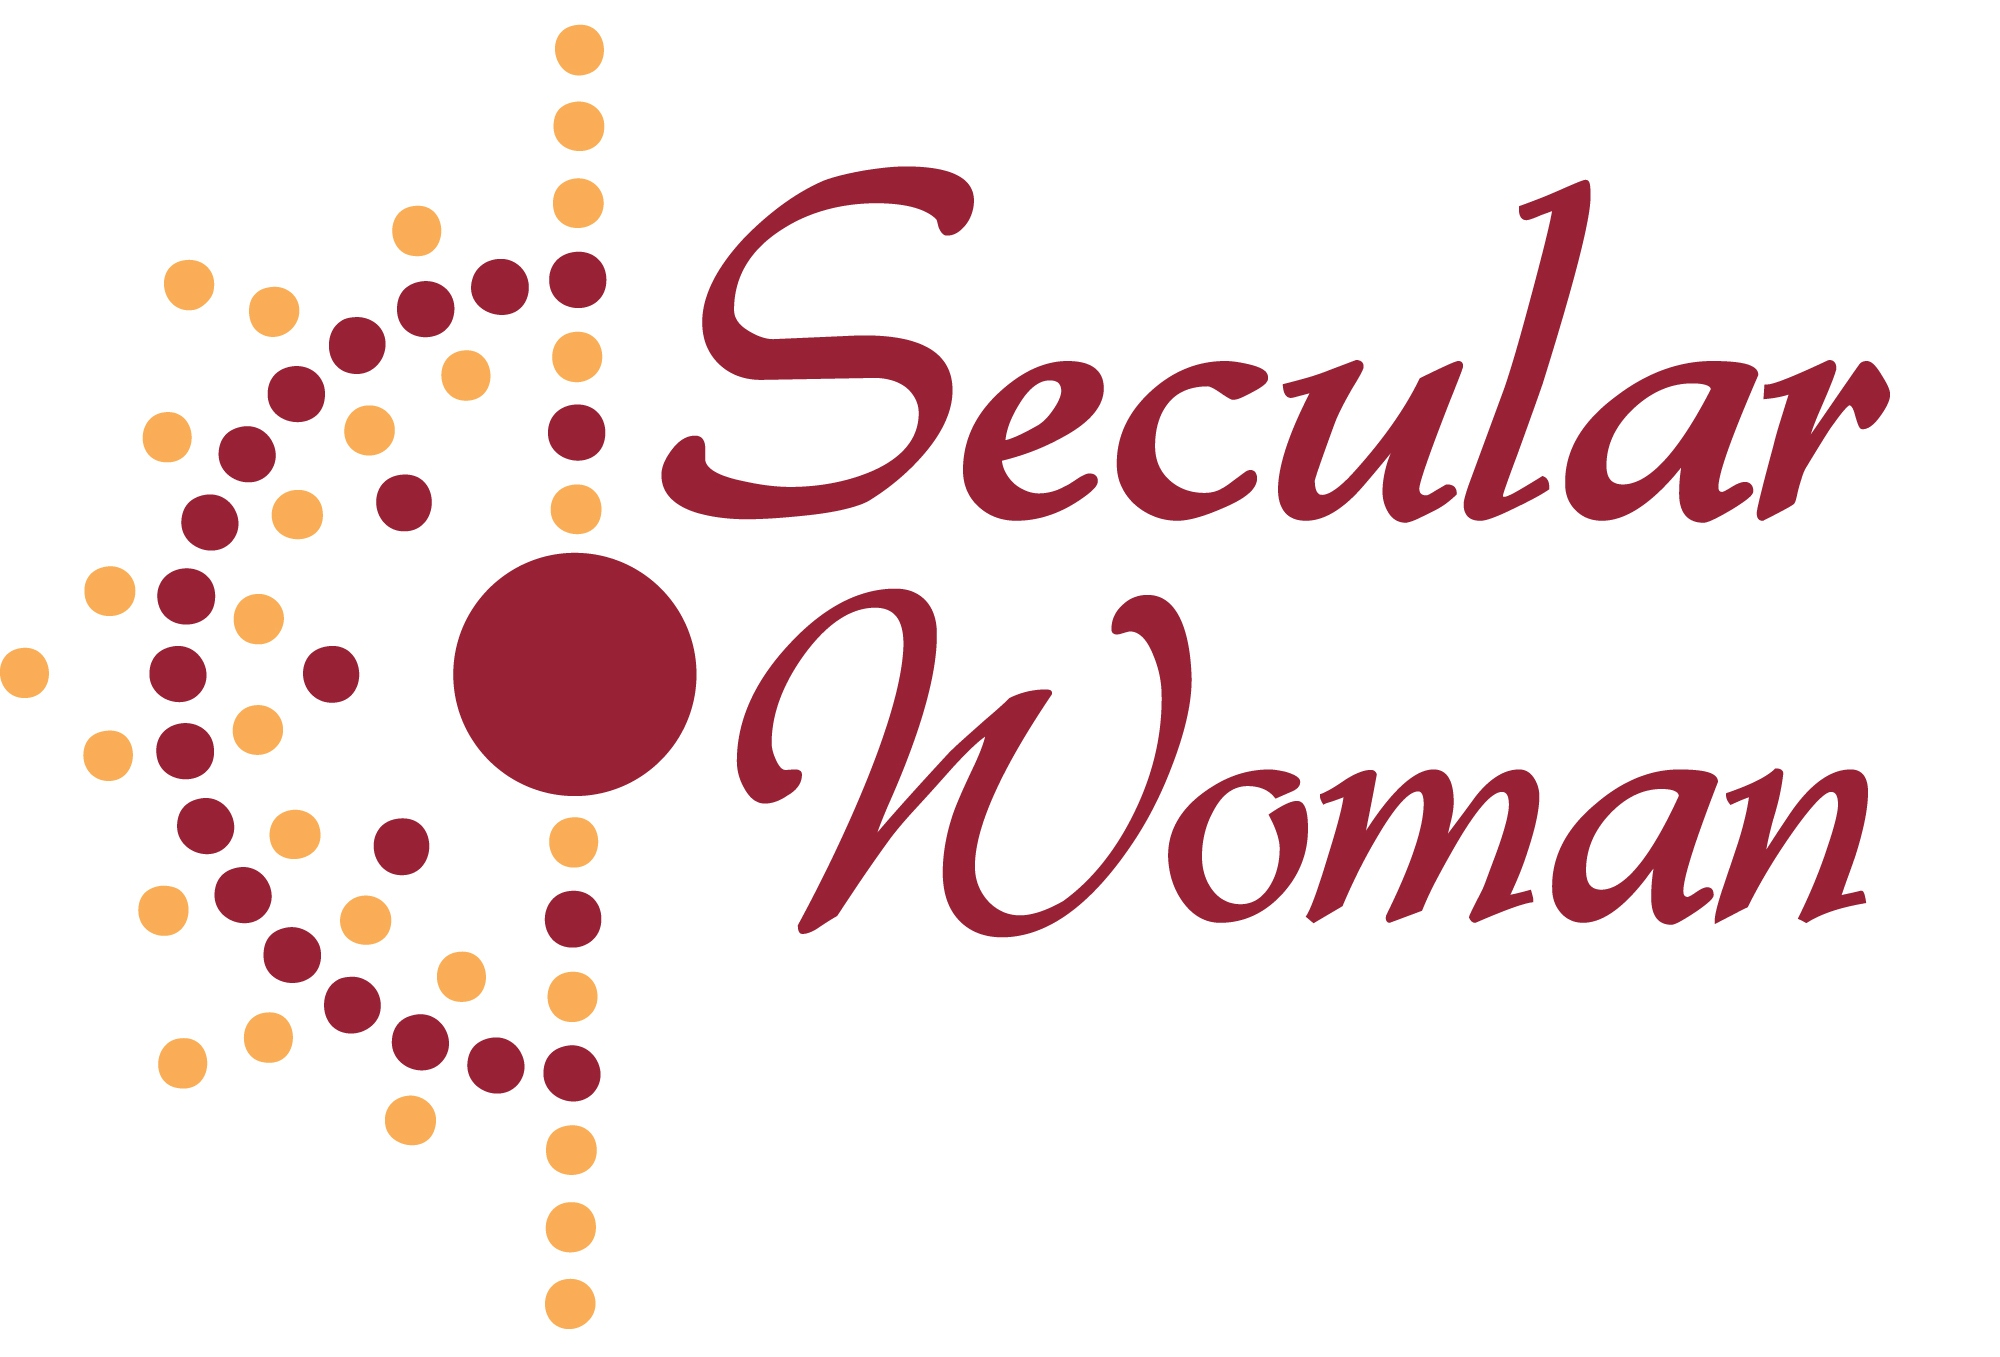 Secular Woman logo: stylized radium icon in dark red and light orange. Text: Secular Woman.